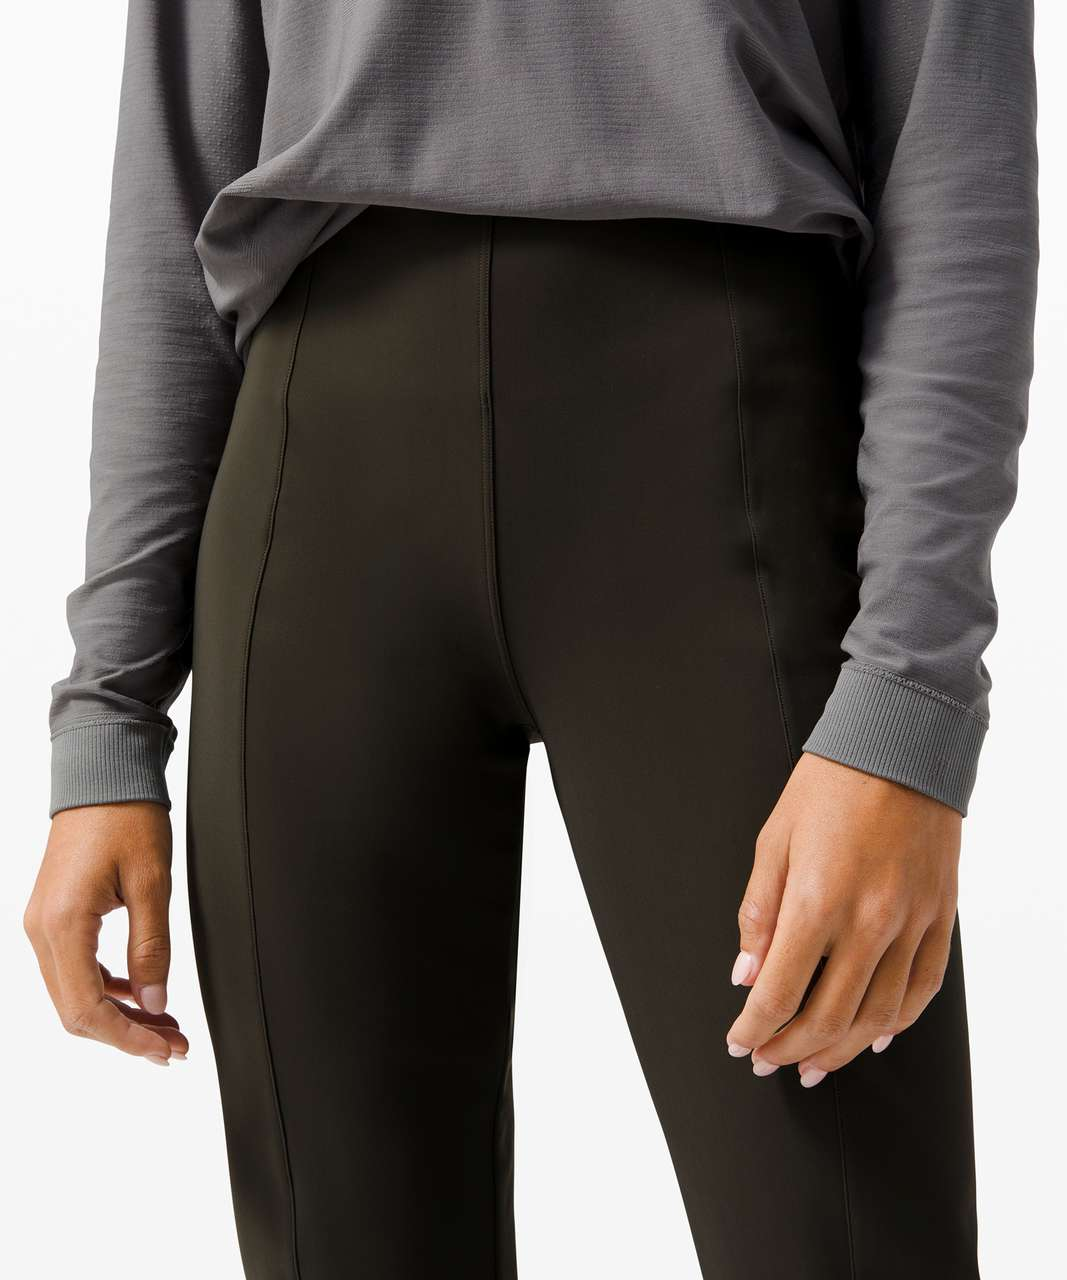 Lululemon Here to There High-Rise 7/8 Pant - Dark Olive / Dark Olive